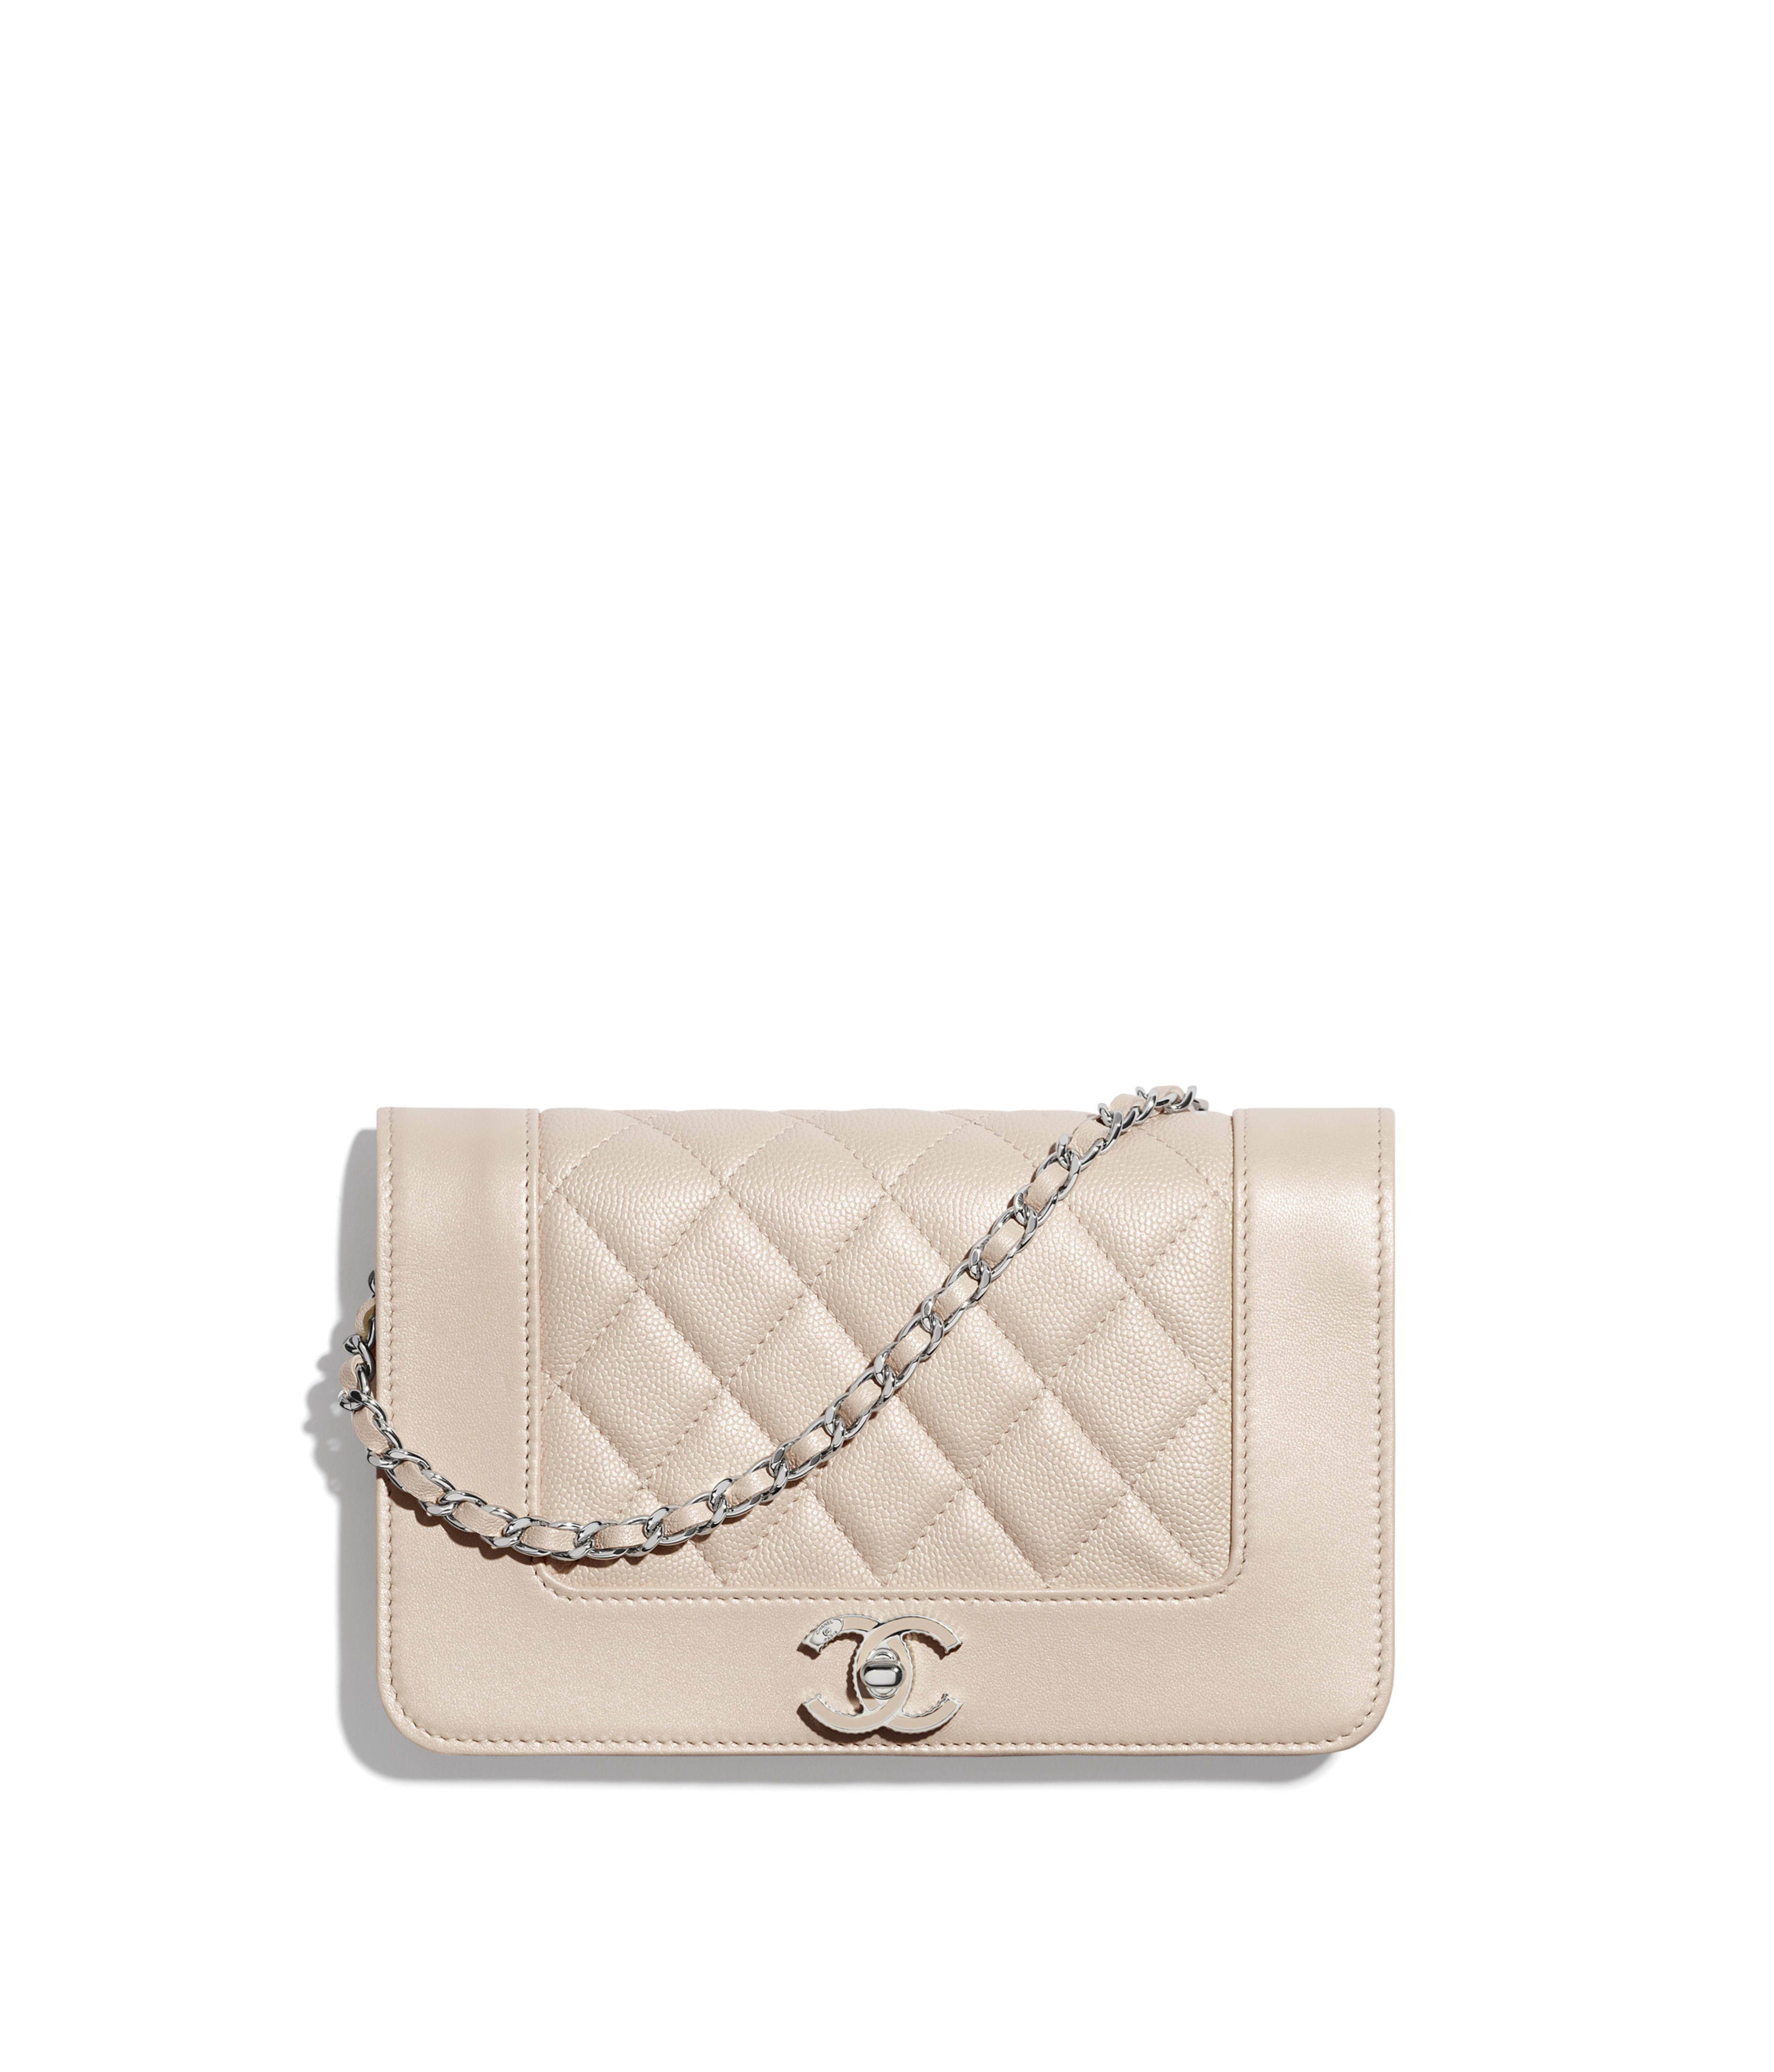 Wallets On Chain Small Leather Goods Chanel All items are authenticated through a rigorous process overseen by experts. chanel